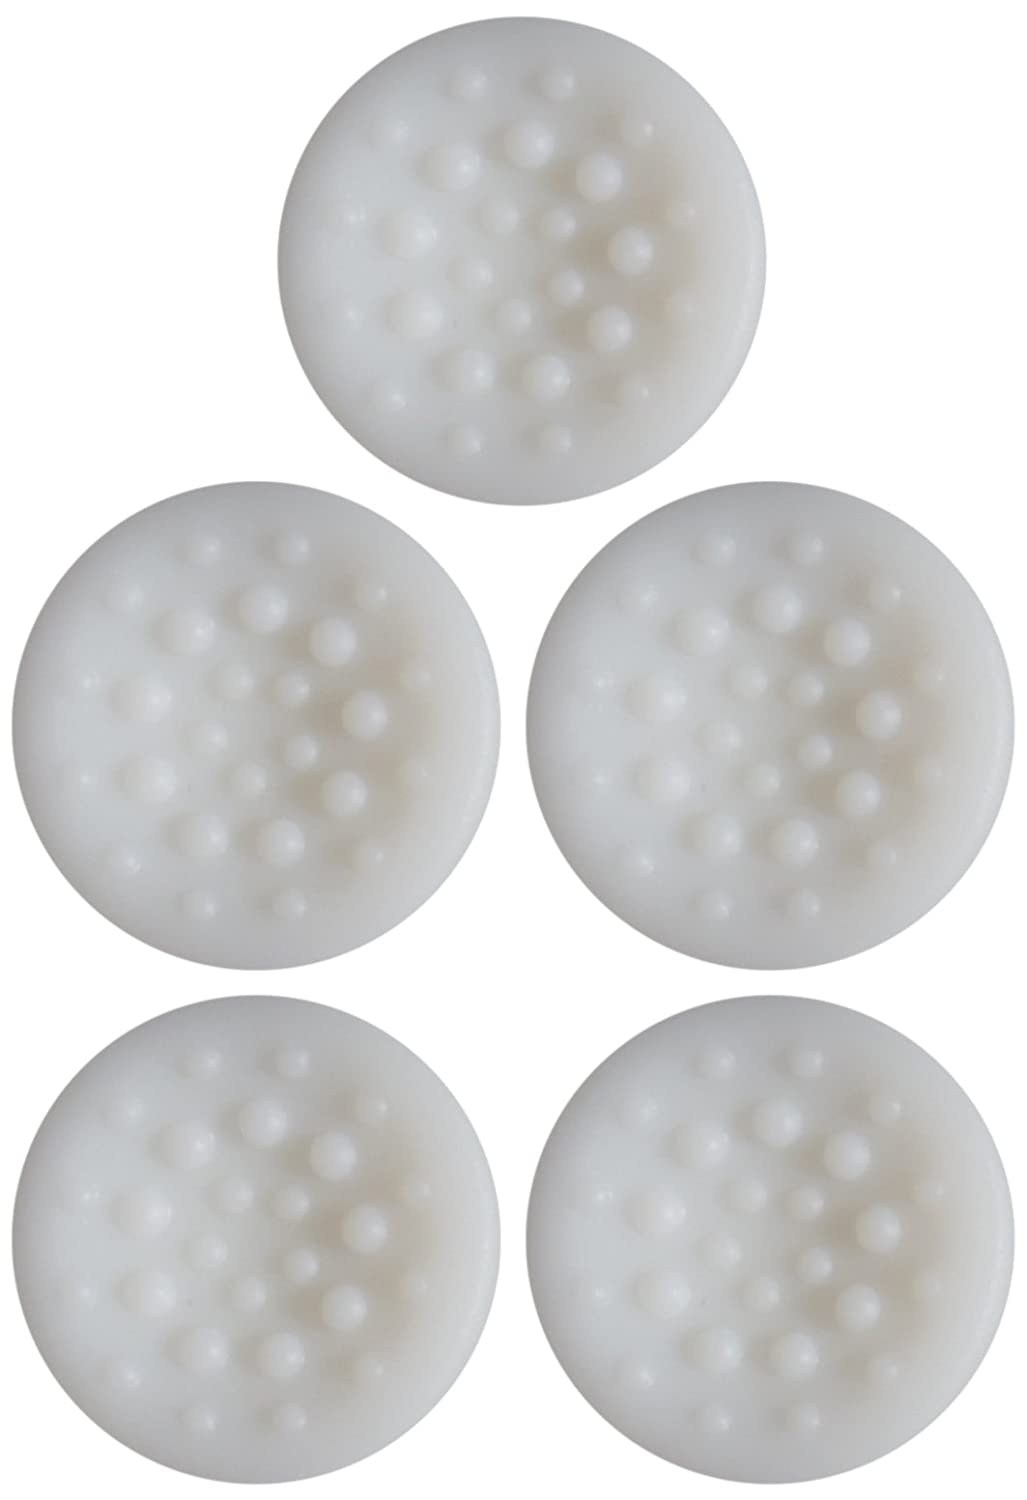 Fabulips Pout-o-Matic Replacement Heads by Bliss for Women - 5 Pc Polishing Heads 651043024319